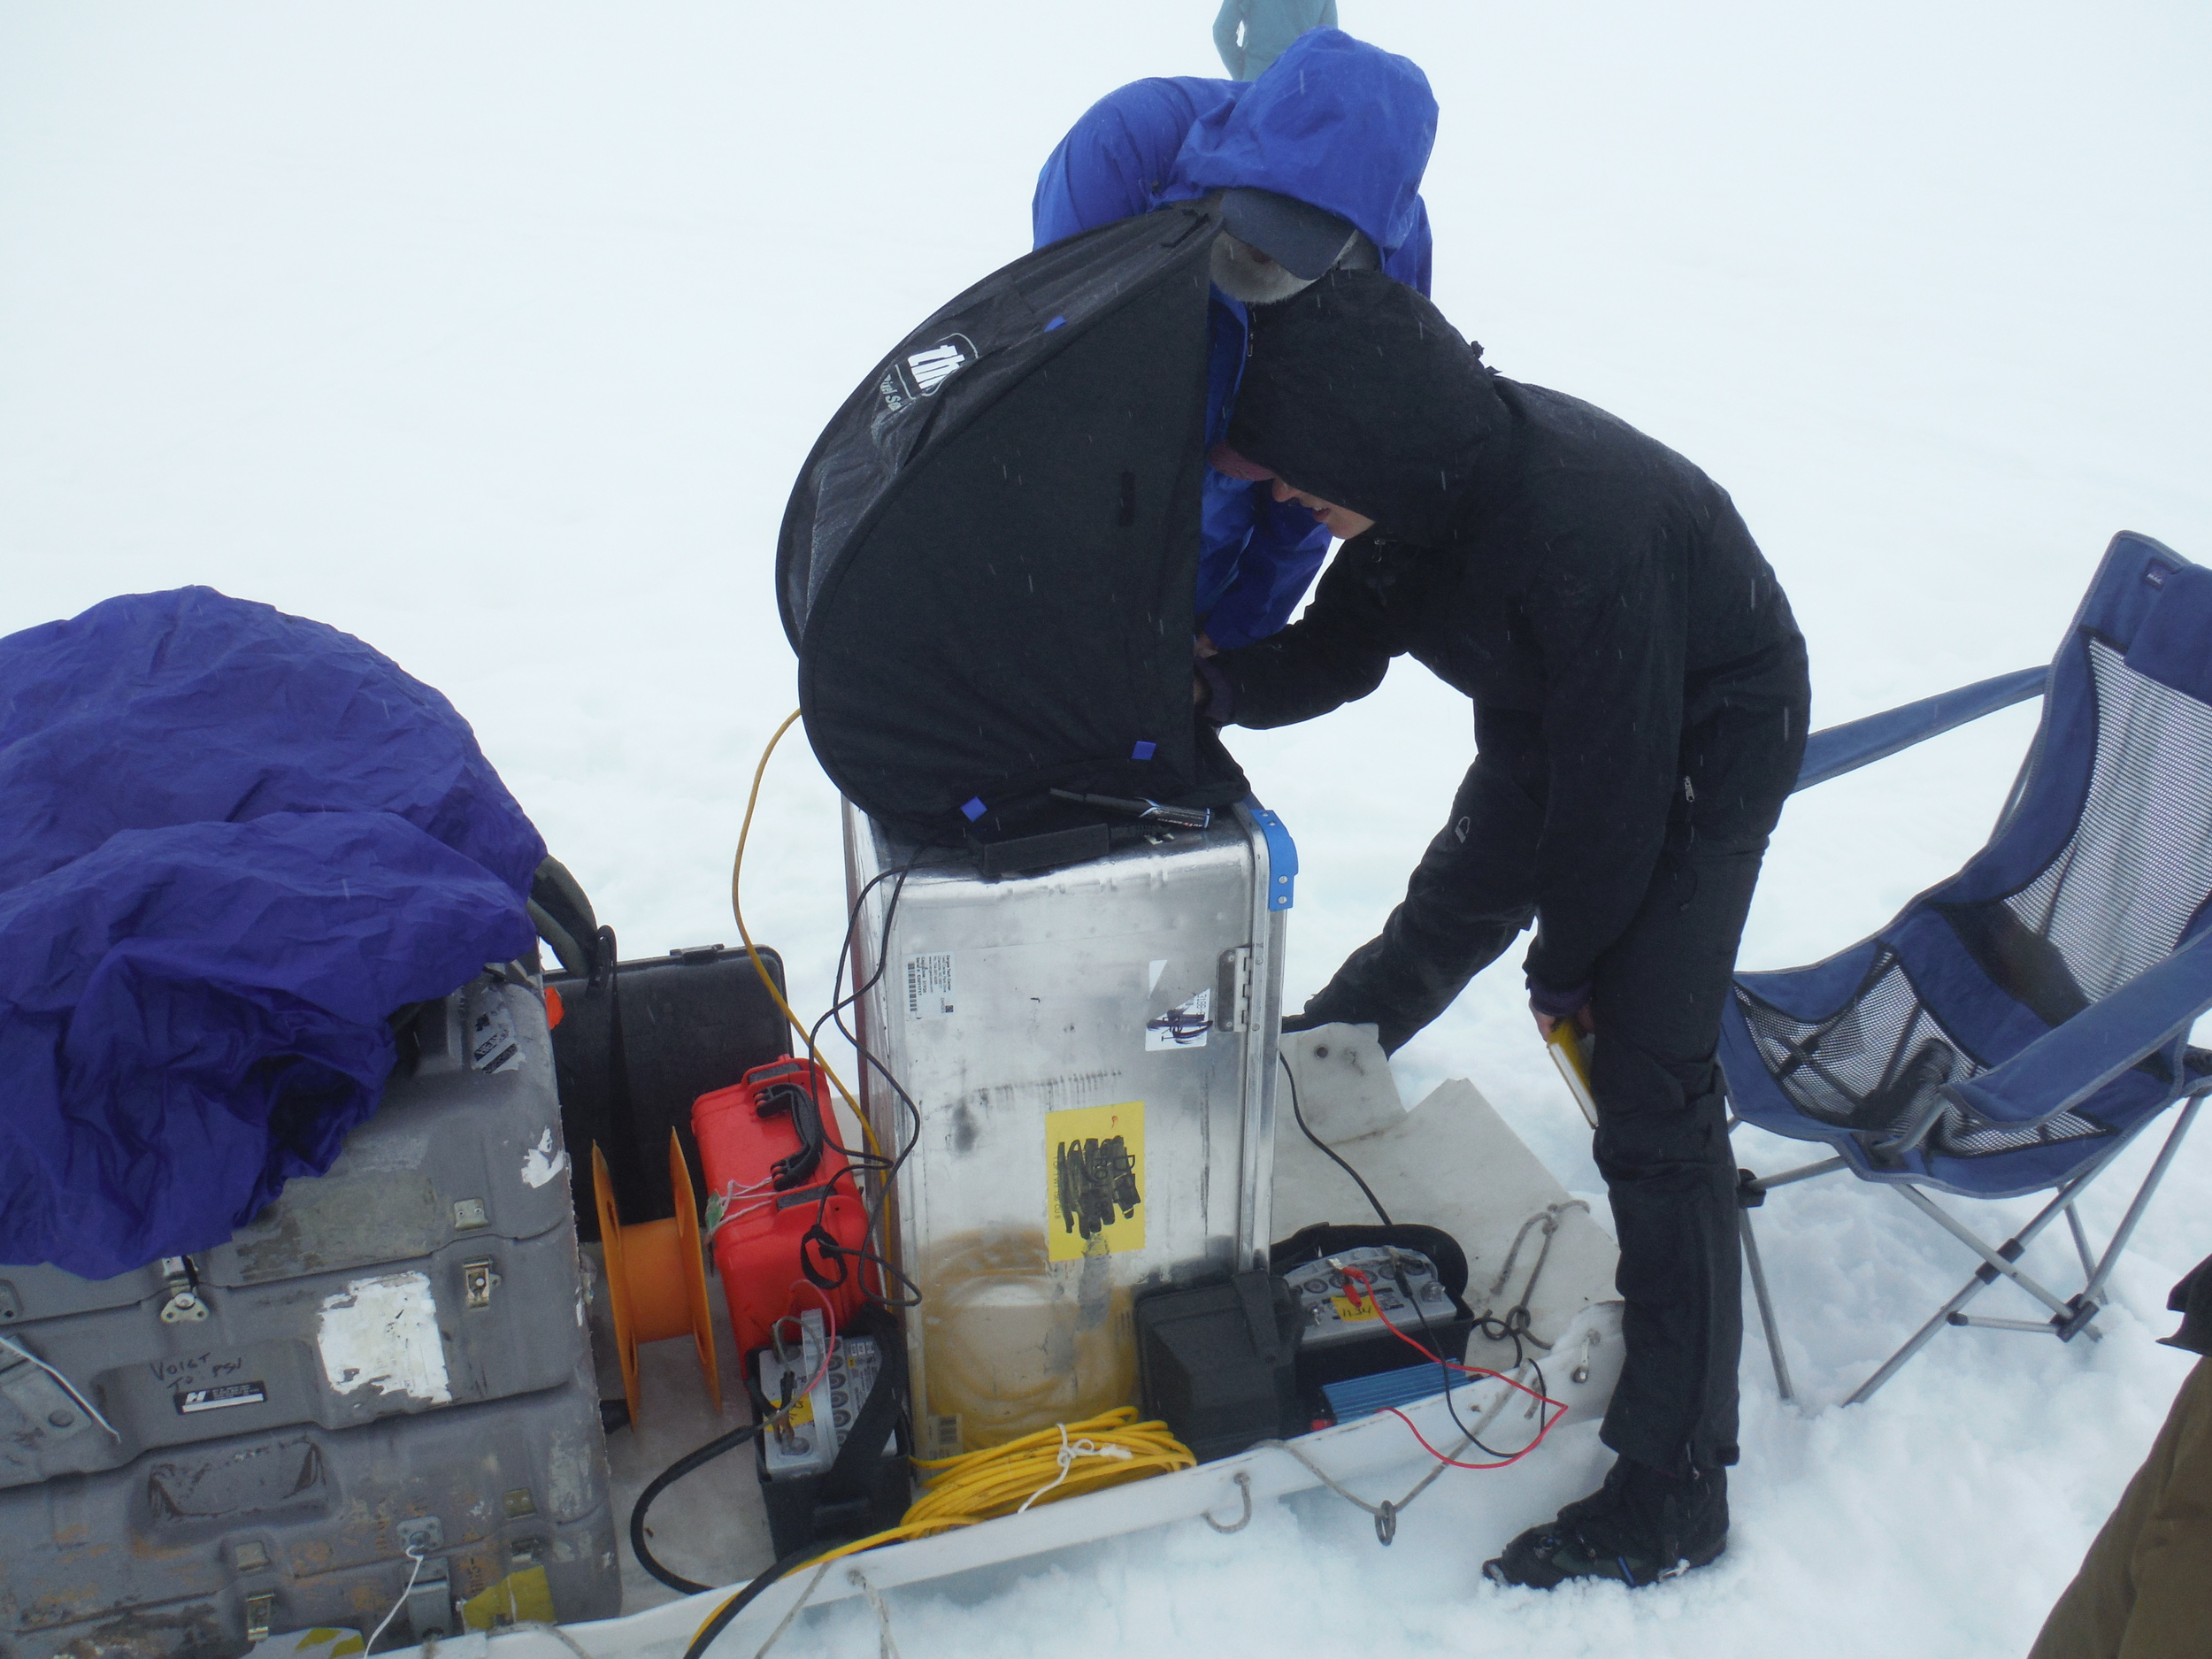 One of several temporary seismic stations.  Don Voight - left, Kiya Riverman - right;  photo by Dan King